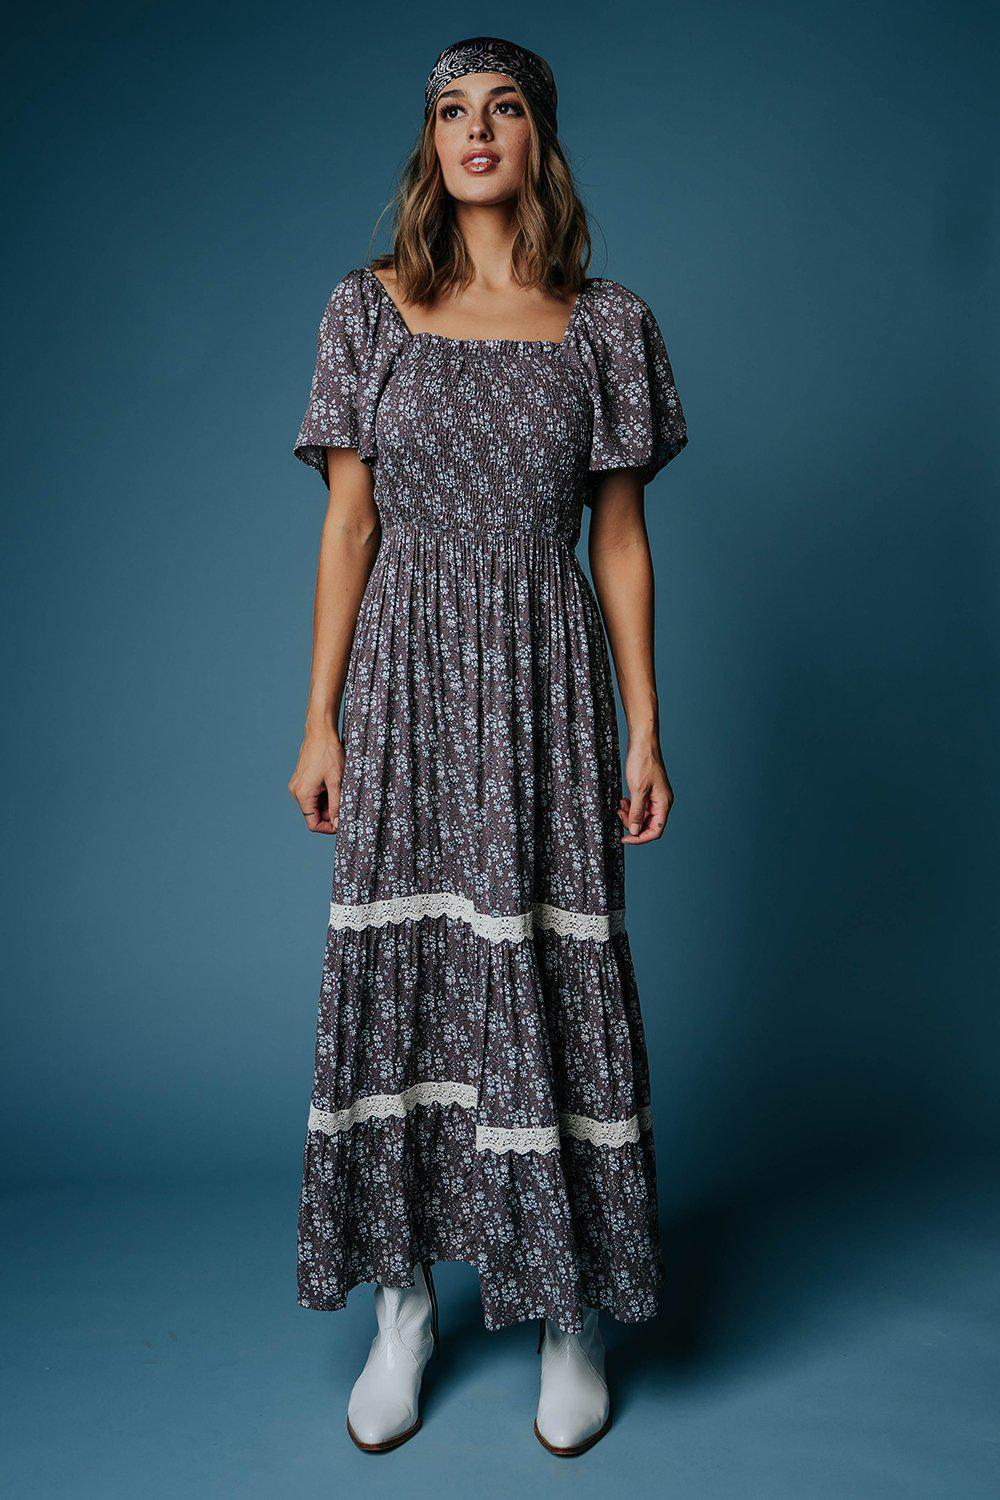 best_seller, In the Prairie Floral Maxi Dress - FINAL SALE, Dress, women's clothing, dresses, skirts, coats, jackets, shoes, boots, tops, tee shirts, jeans, free people, levi's, rollas, jumpsuits, bottoms, tops, sweaters, pullovers, pants, shorts, sweats,.